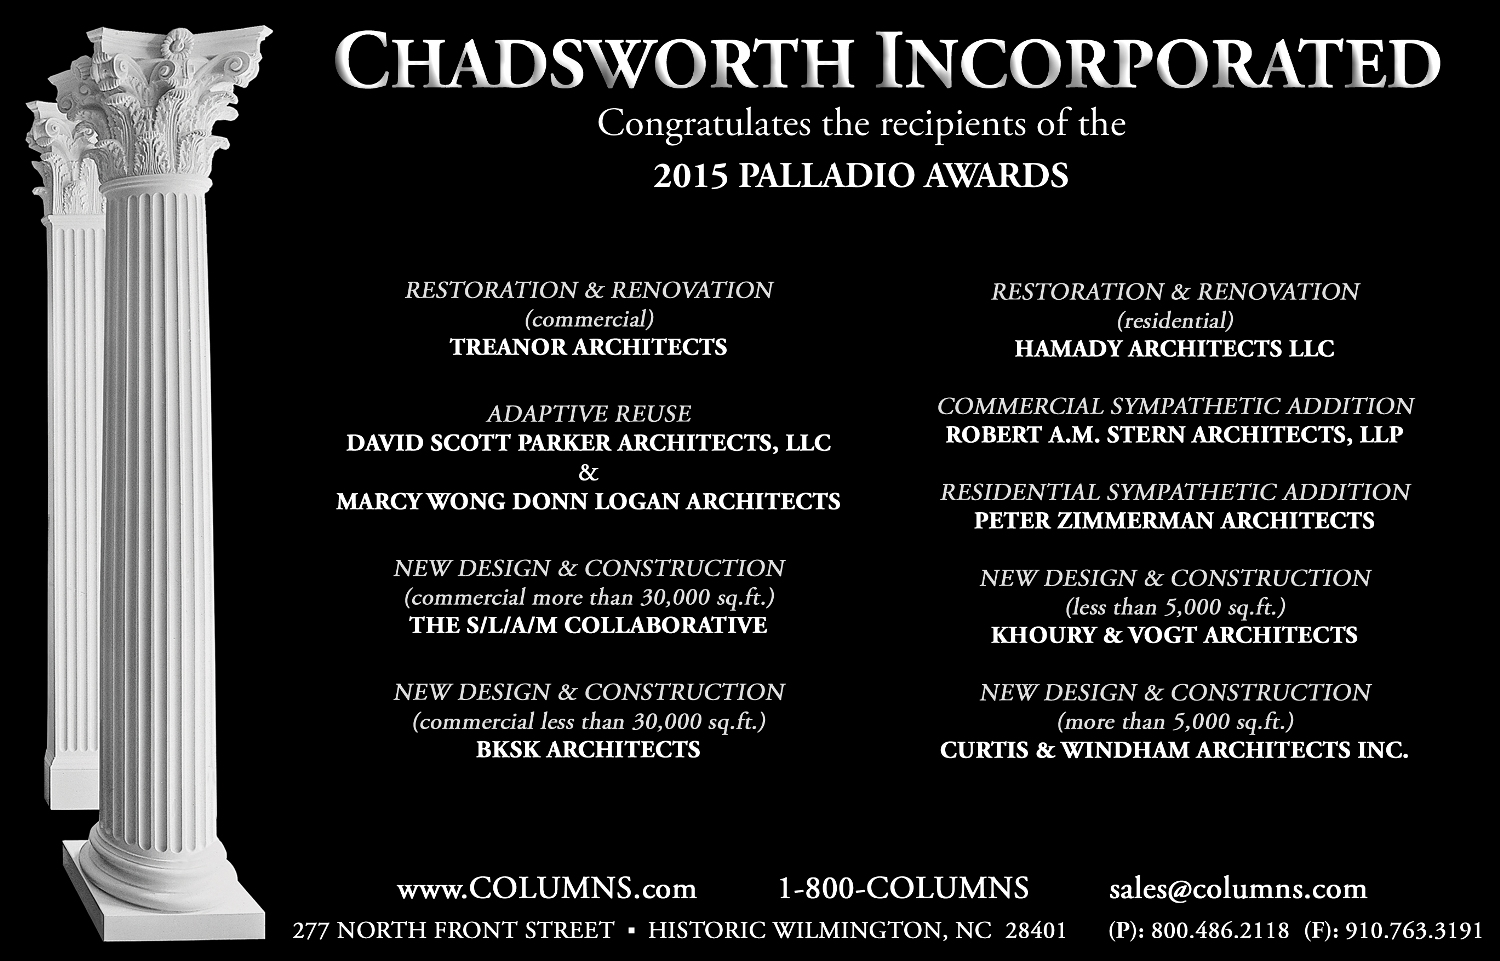 Chadsworth columns congratulates all of the winners of the 2015 palladio awards